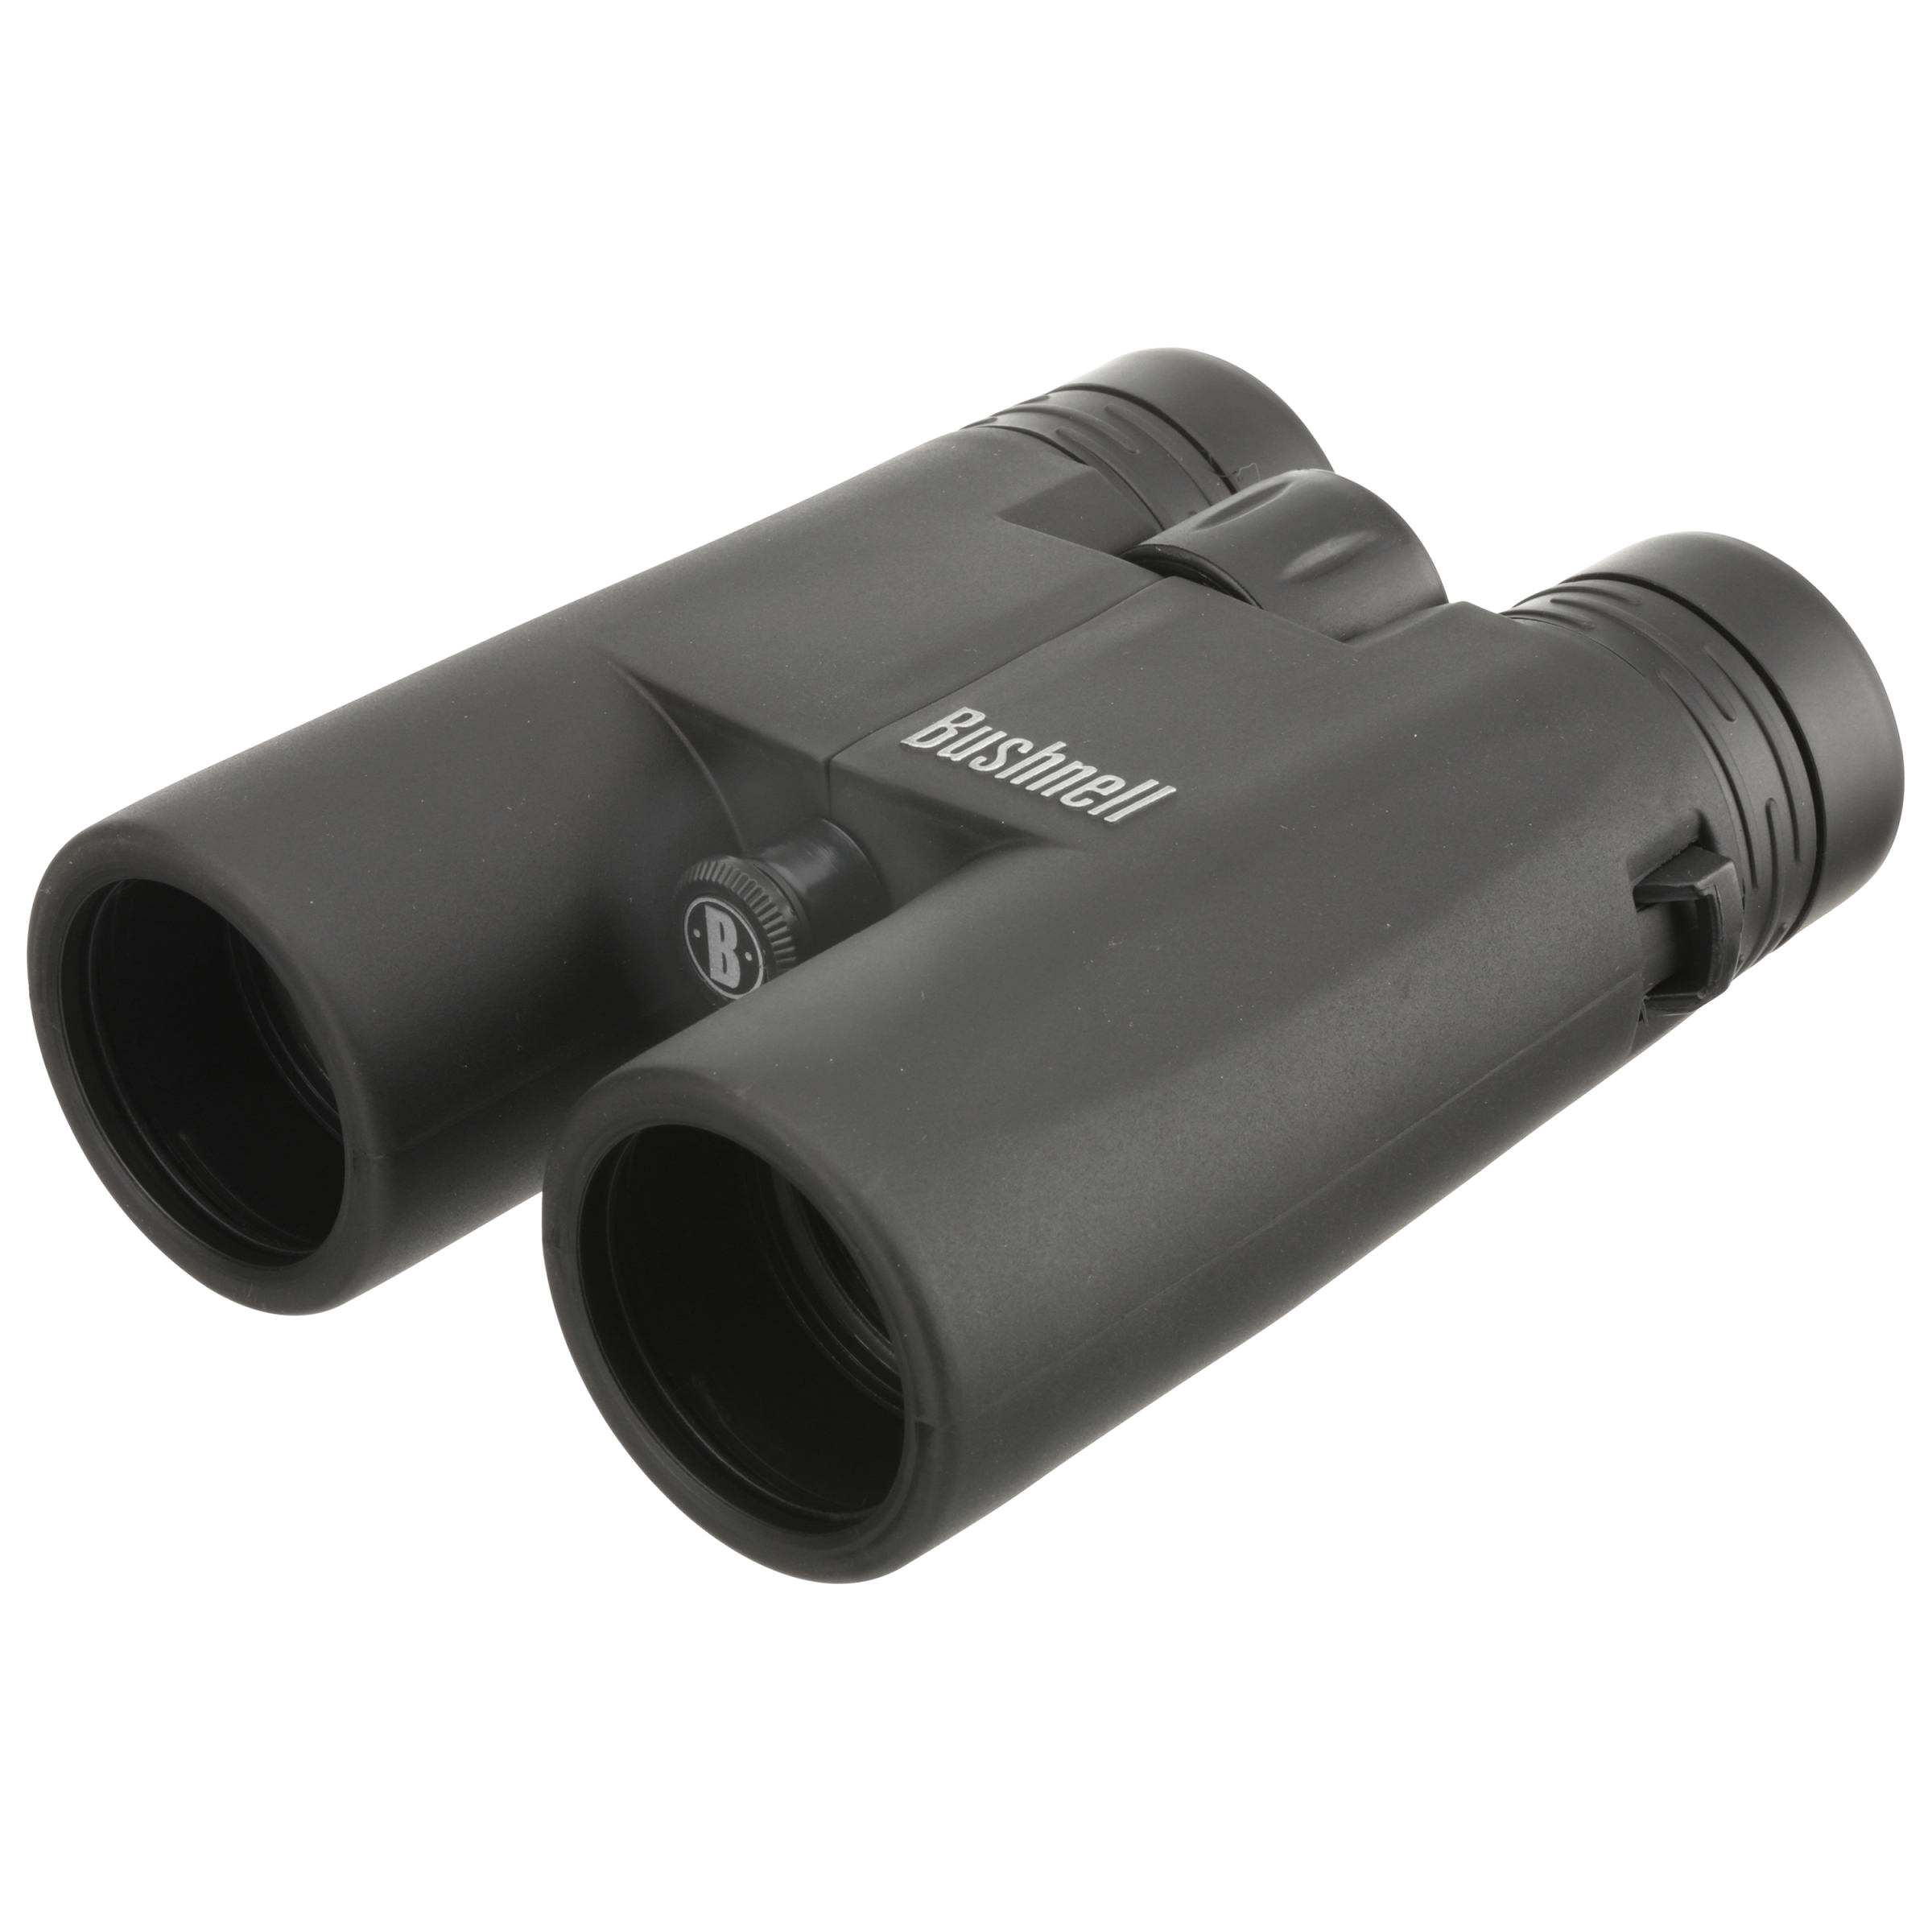 Bushnell Powerview 12x42 Binoculars